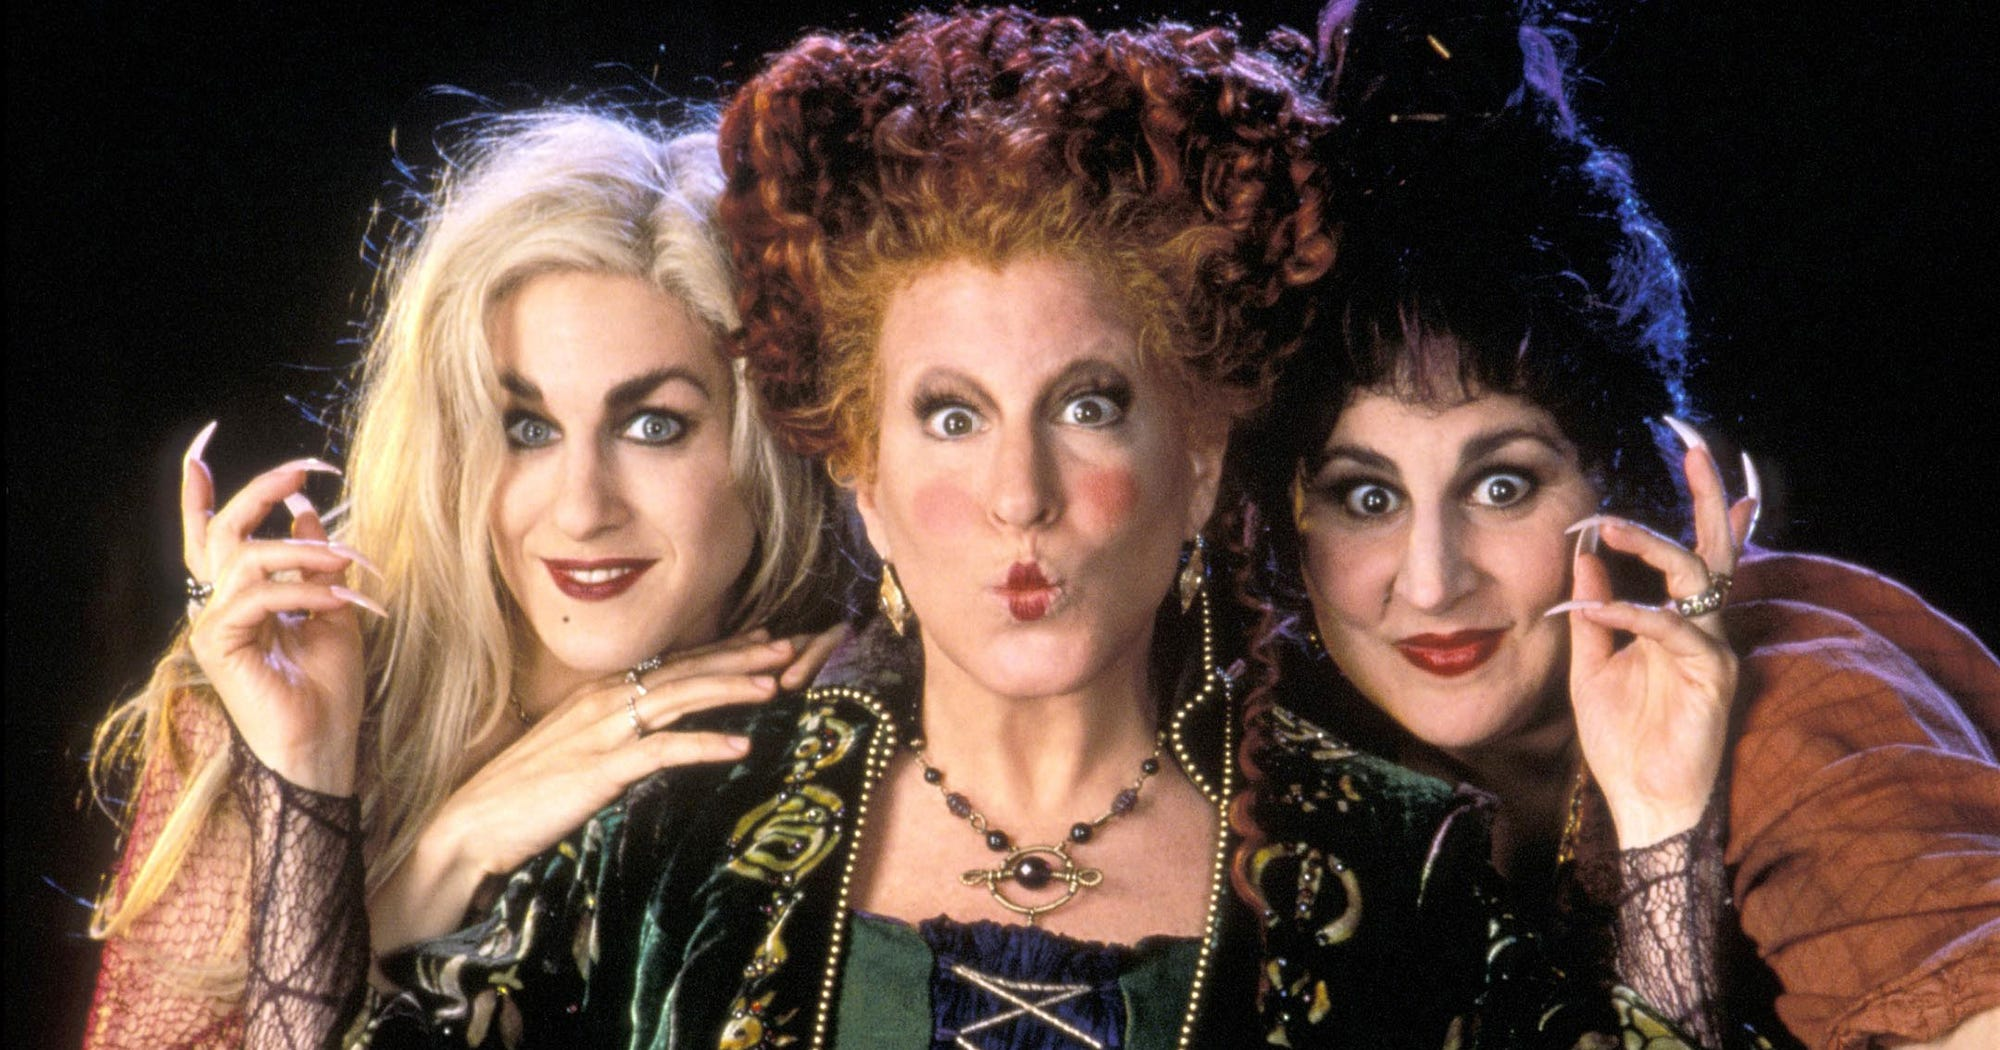 hocus pocus movie cast 2018 where are they now